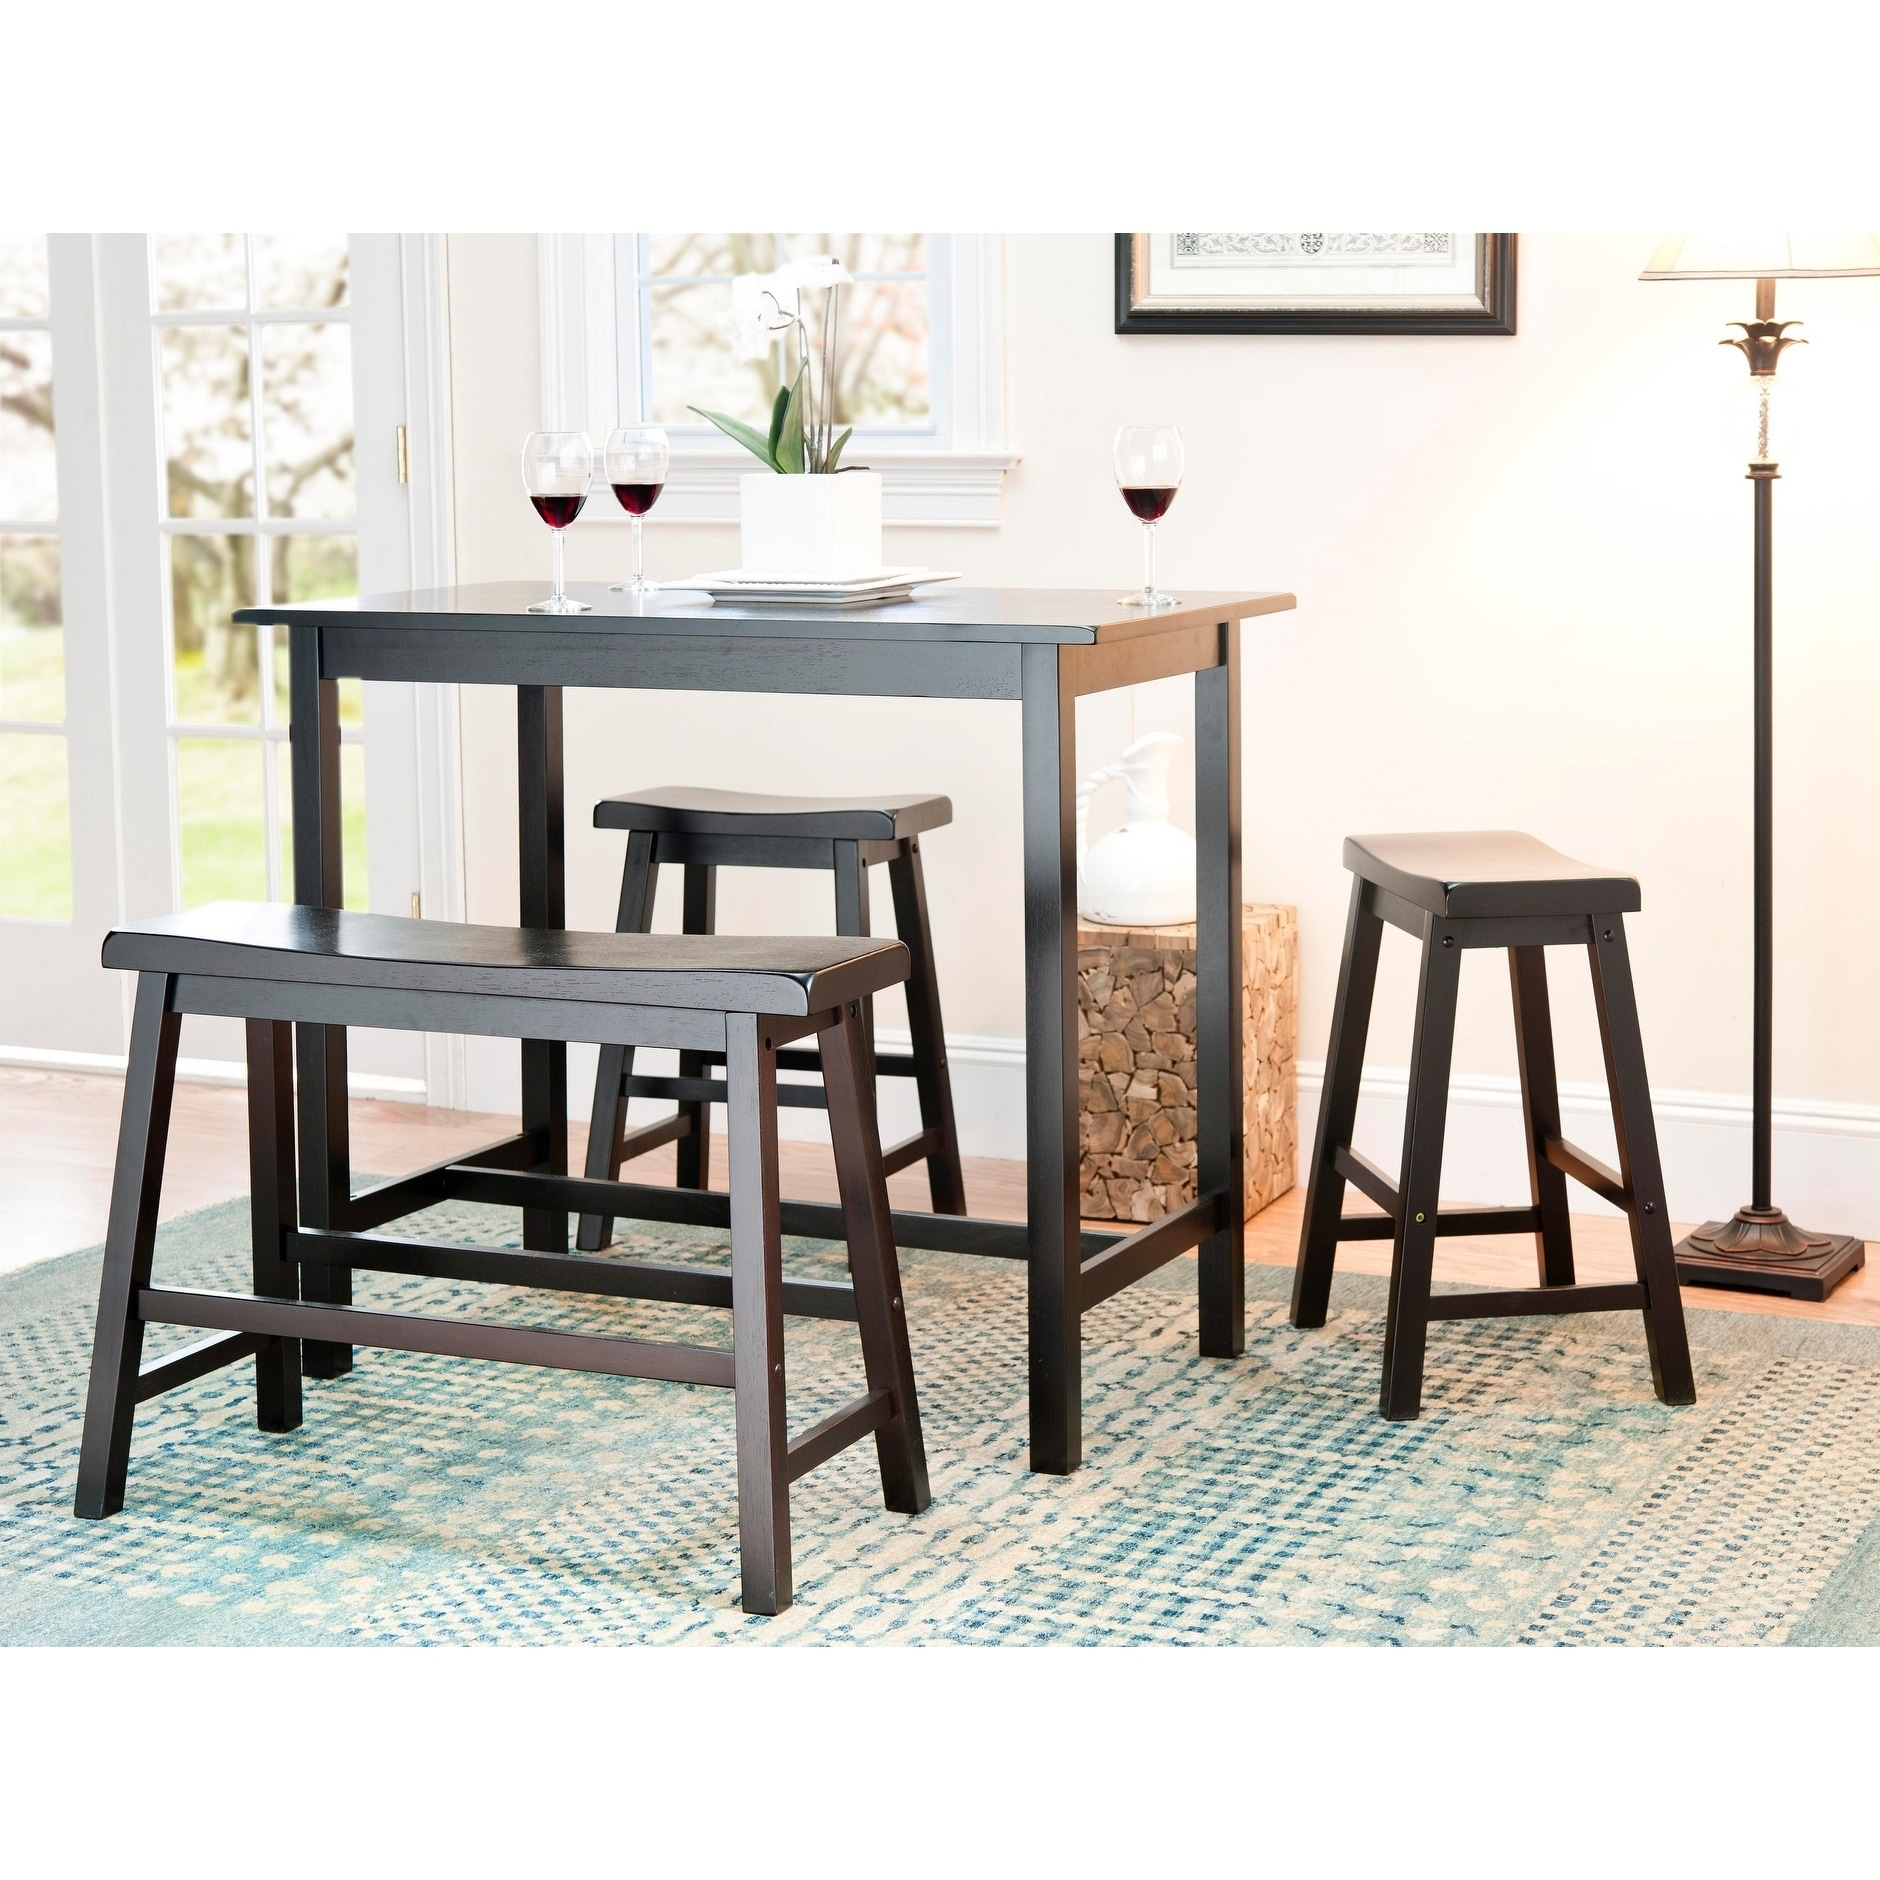 Safavieh Bistro 4-piece Counter-Height Bench and Stool Pu...